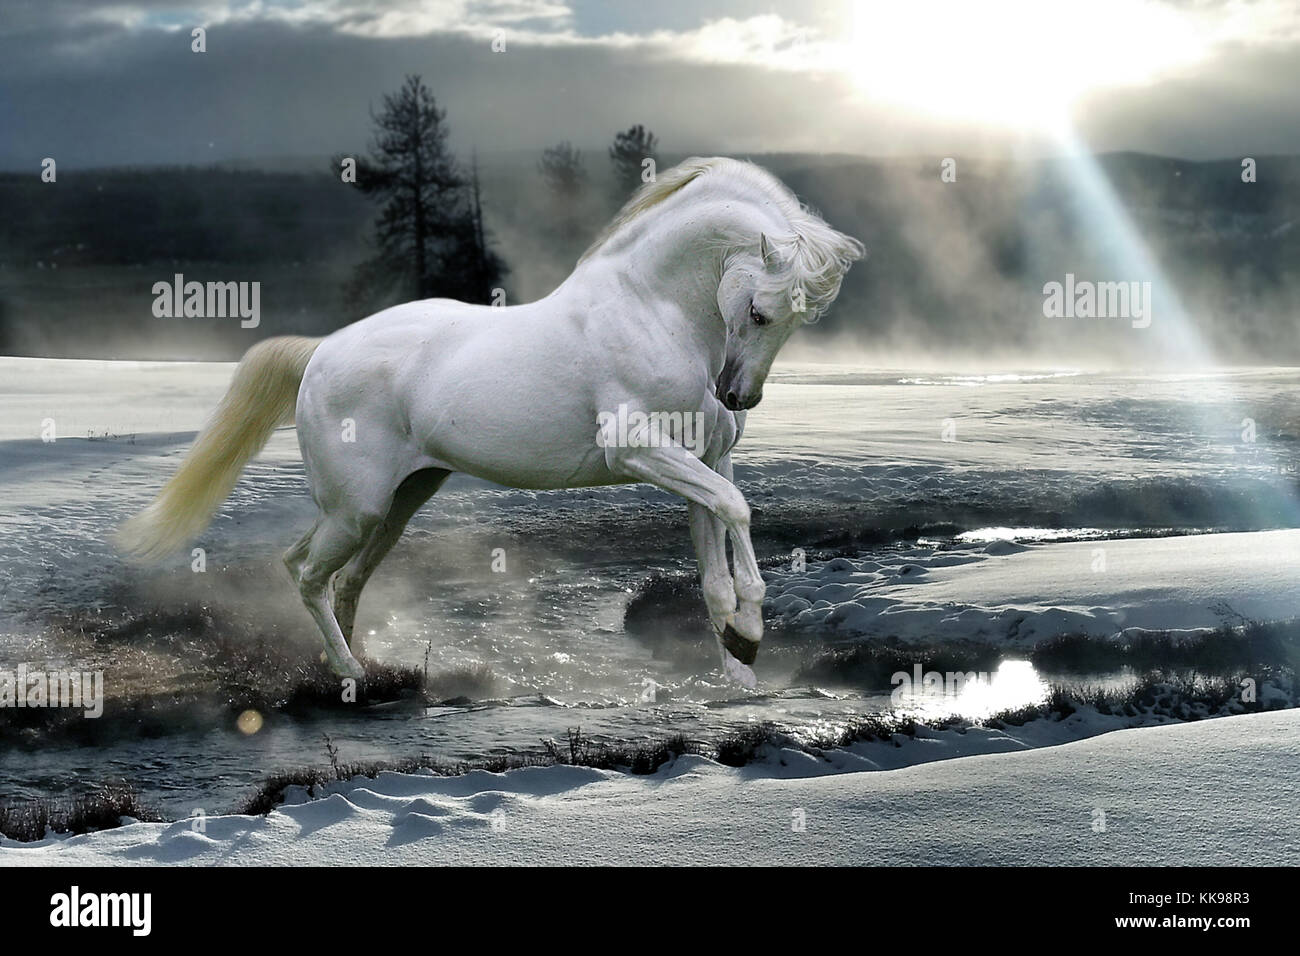 A magical, mystical white horse prancing through the snow and mist over a stream with a shaft of sunlight shining - Stock Image